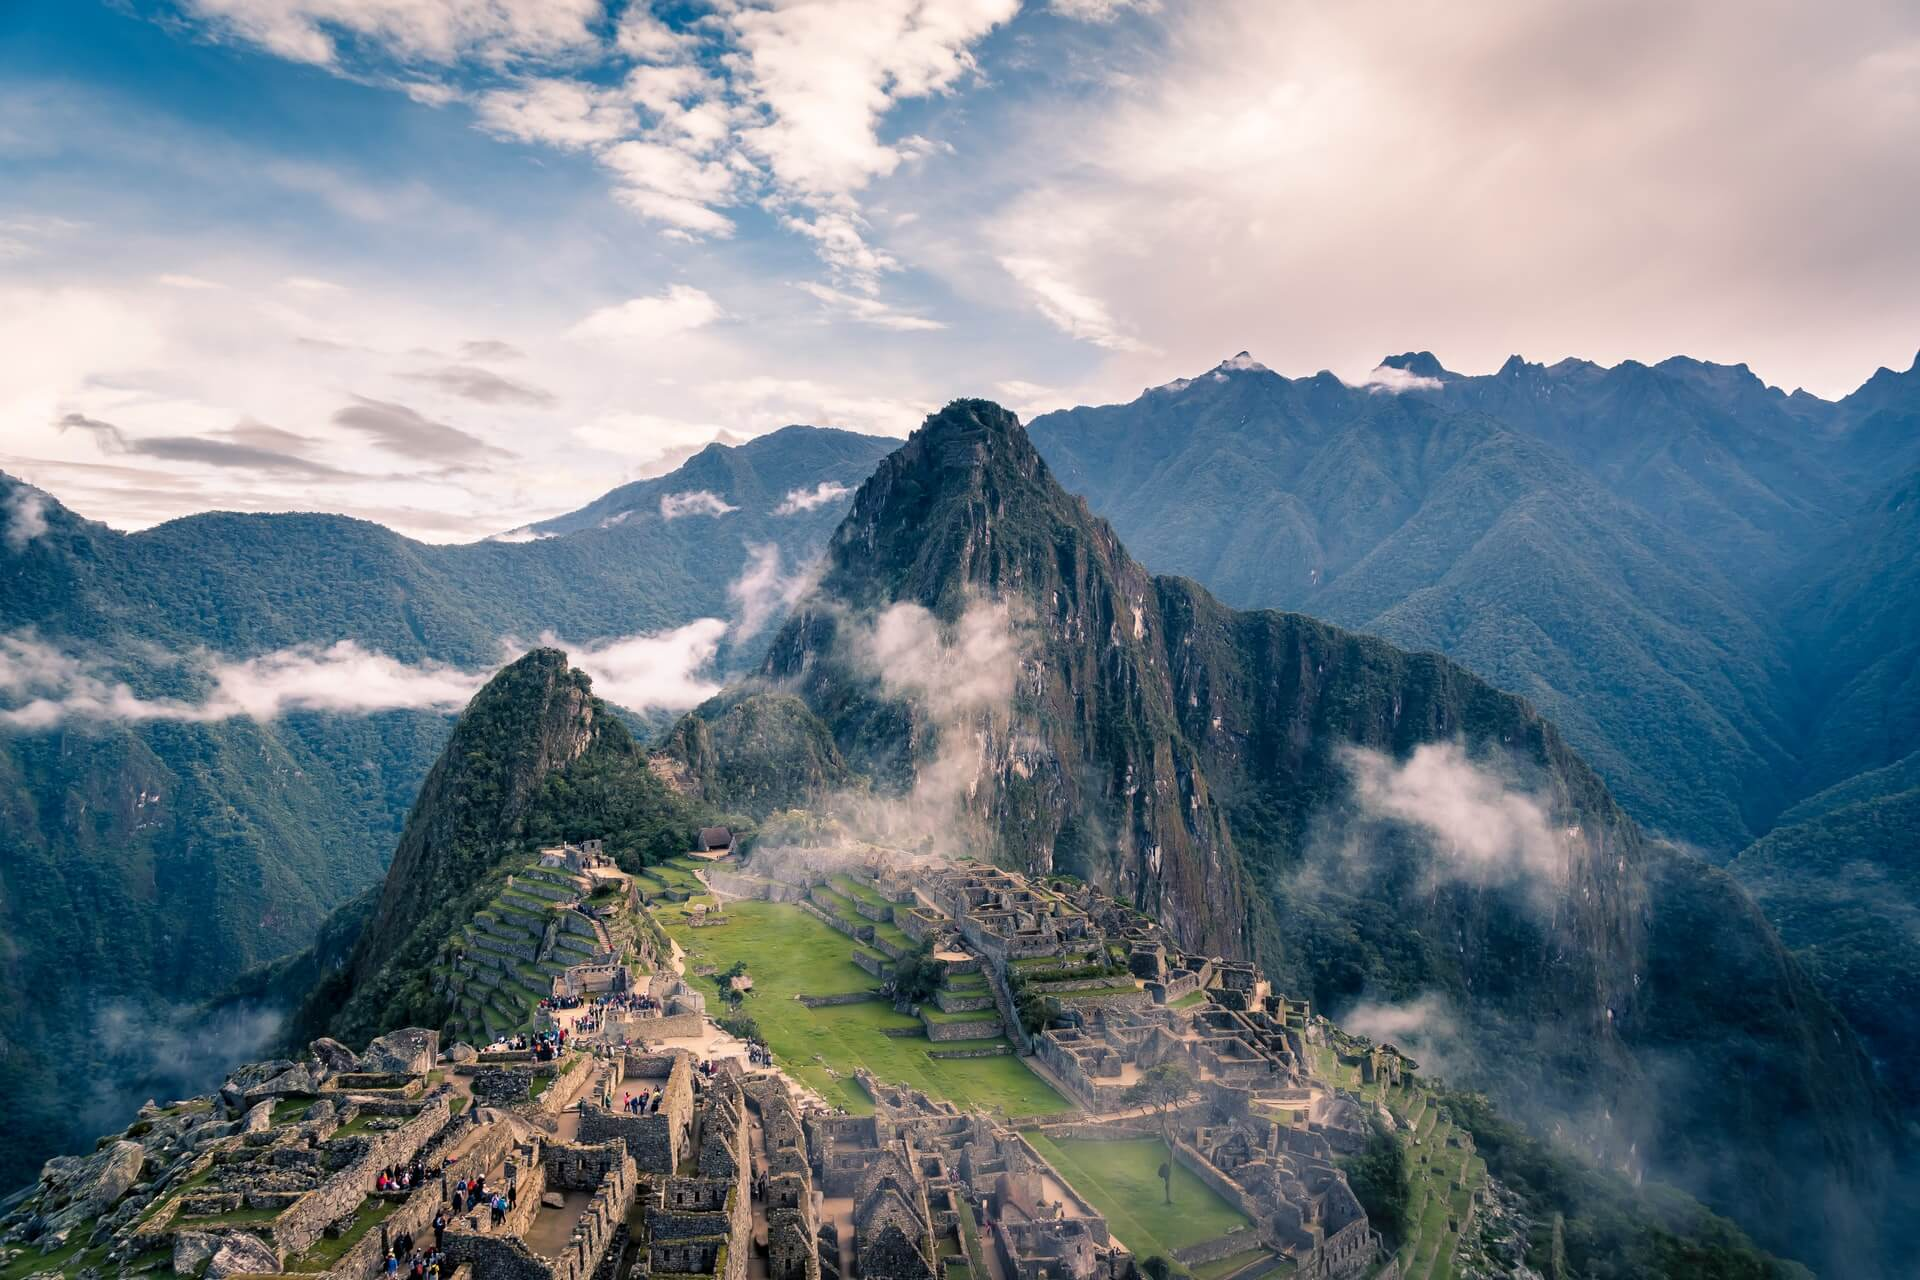 machu picchu view from above